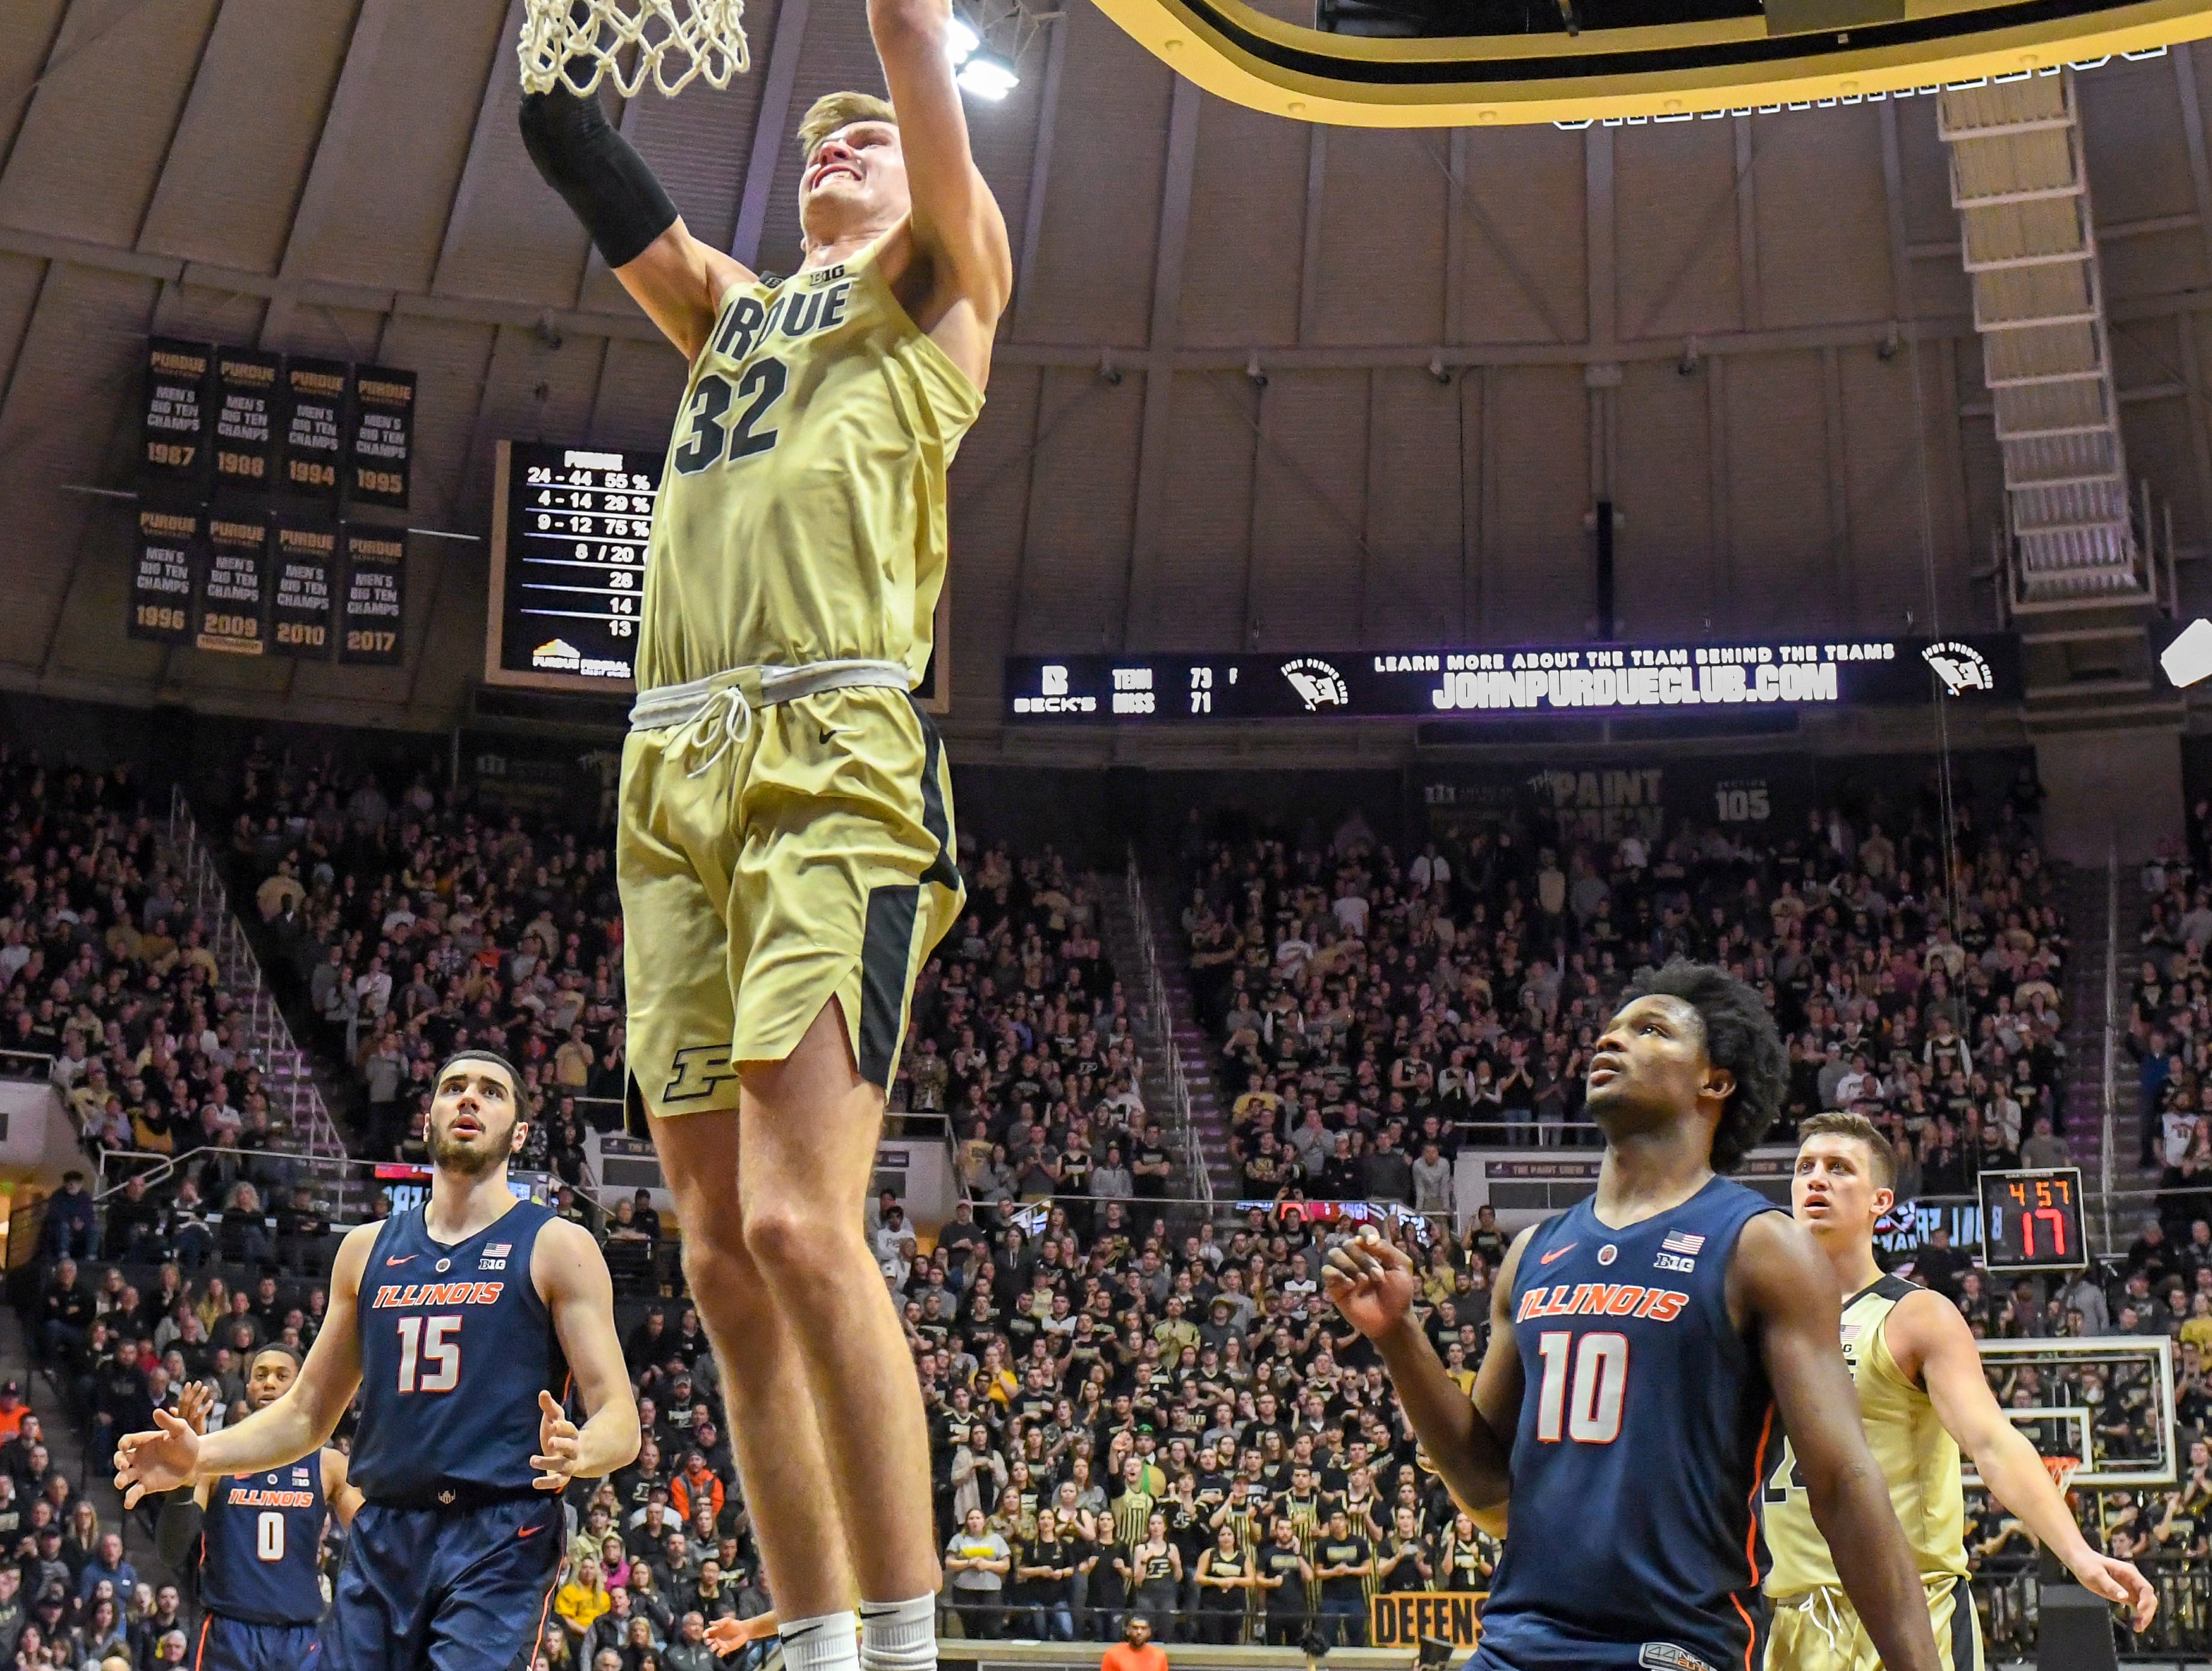 By Frank Oliver for the Journal and Courier --Purdue's Matt Haarms scores on a slam dunk in Purdue's 73-56 win over Illinois on February 27, 2019 in West Lafayette.